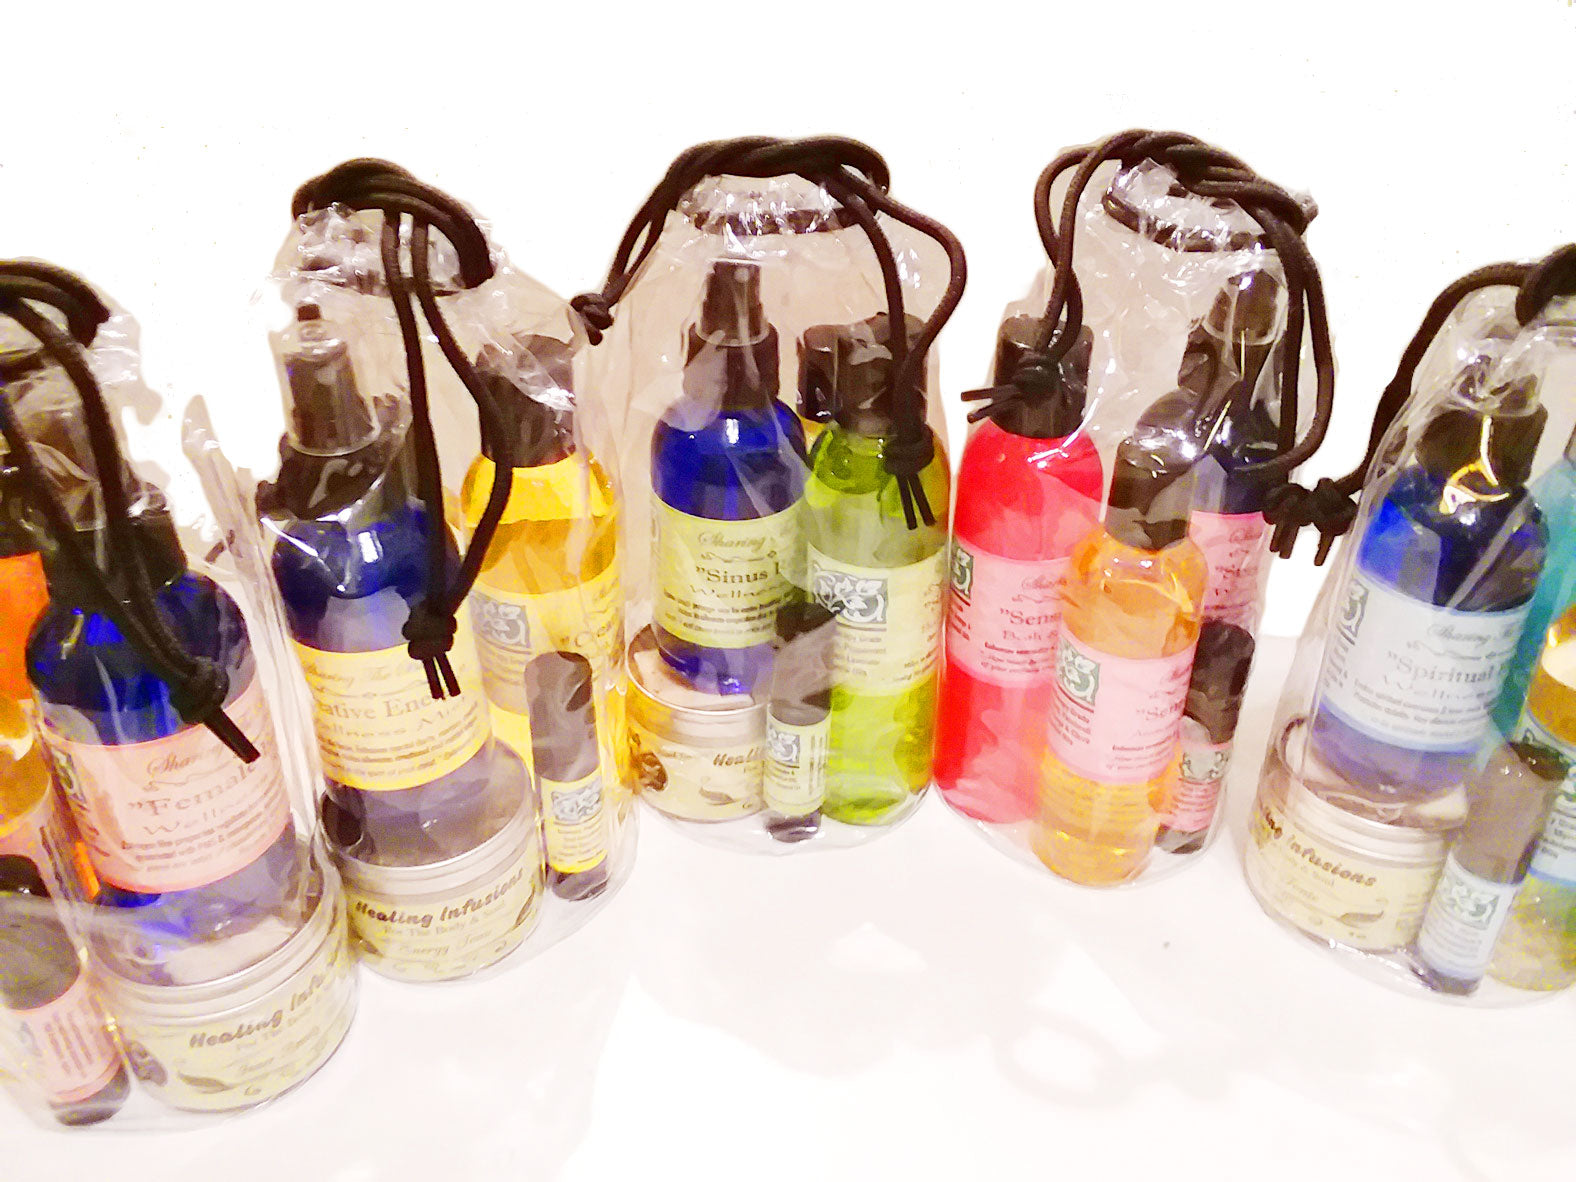 5 Pc. FEMALE EASE Wellness Tote